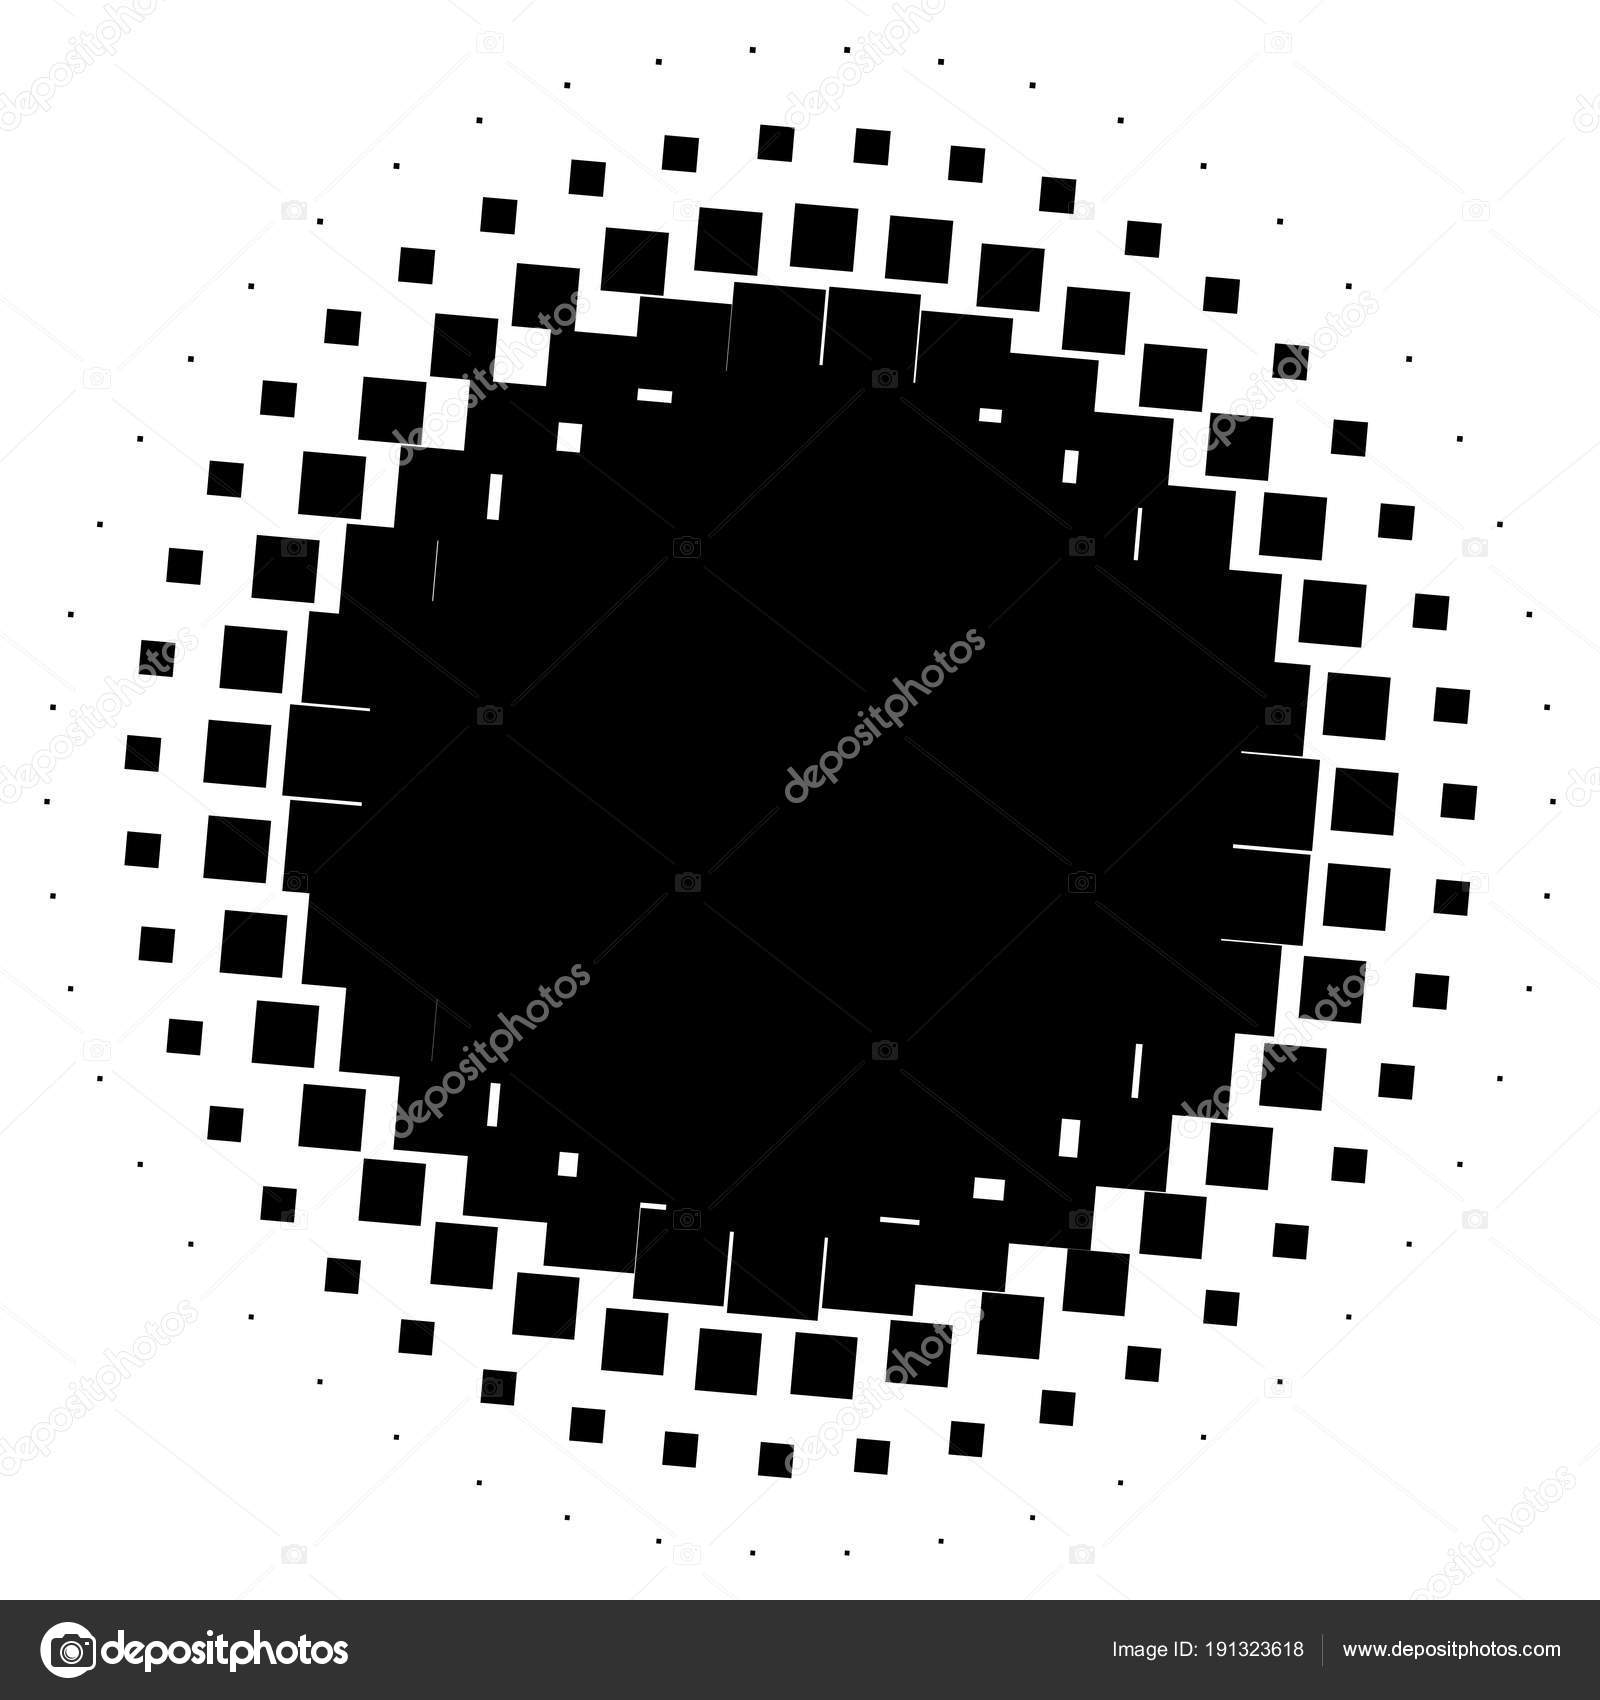 https://st3.depositphotos.com/1216158/19132/v/1600/depositphotos_191323618-stock-illustration-halftone-element-abstract-geometric-graphic.jpg